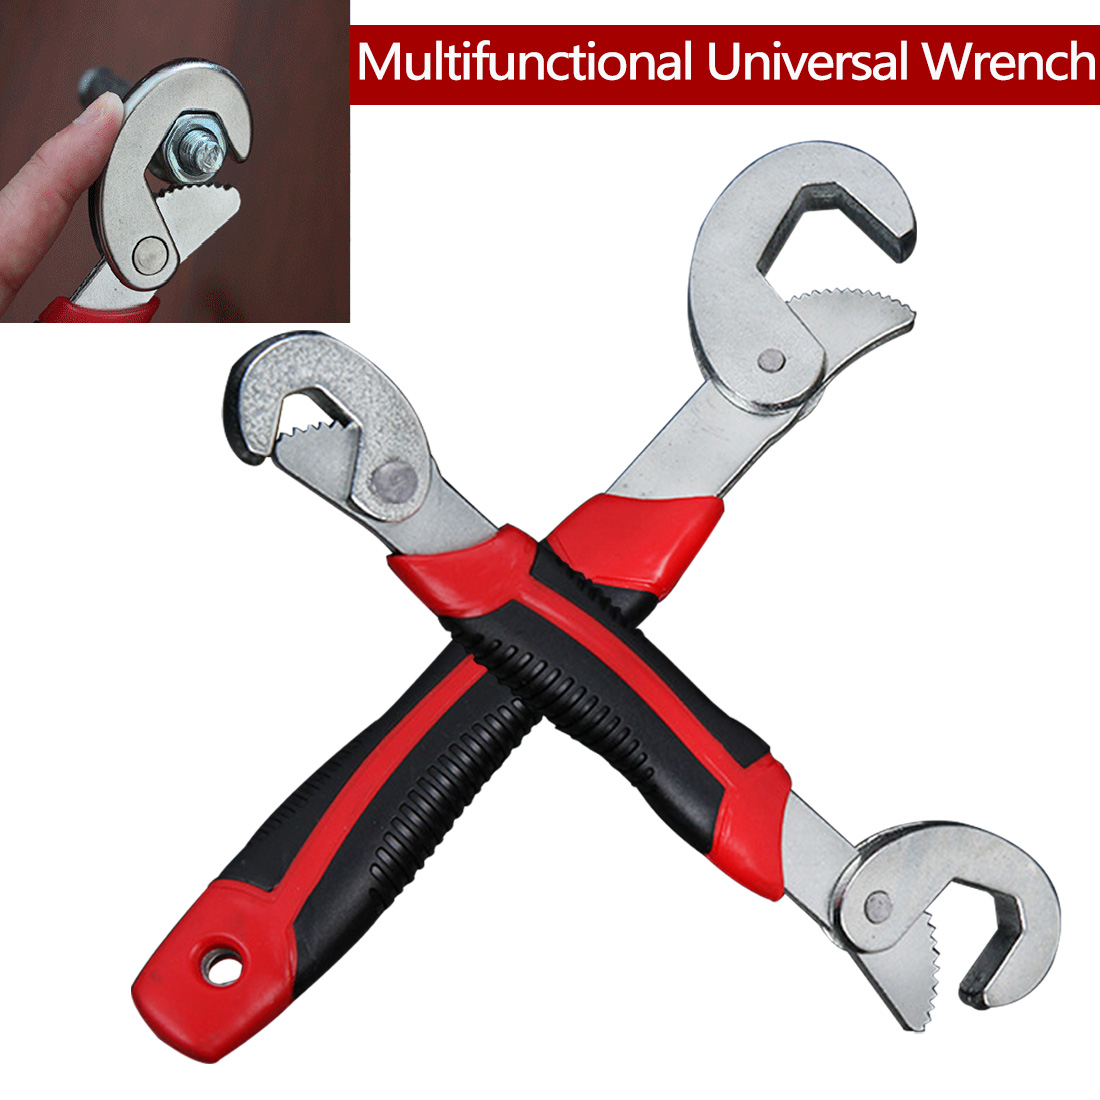 цена на Spanner Set Multi-function Wrench Universal key Quick Snap and Grip Adjustable Spanner Wrench For Nuts and Bolts